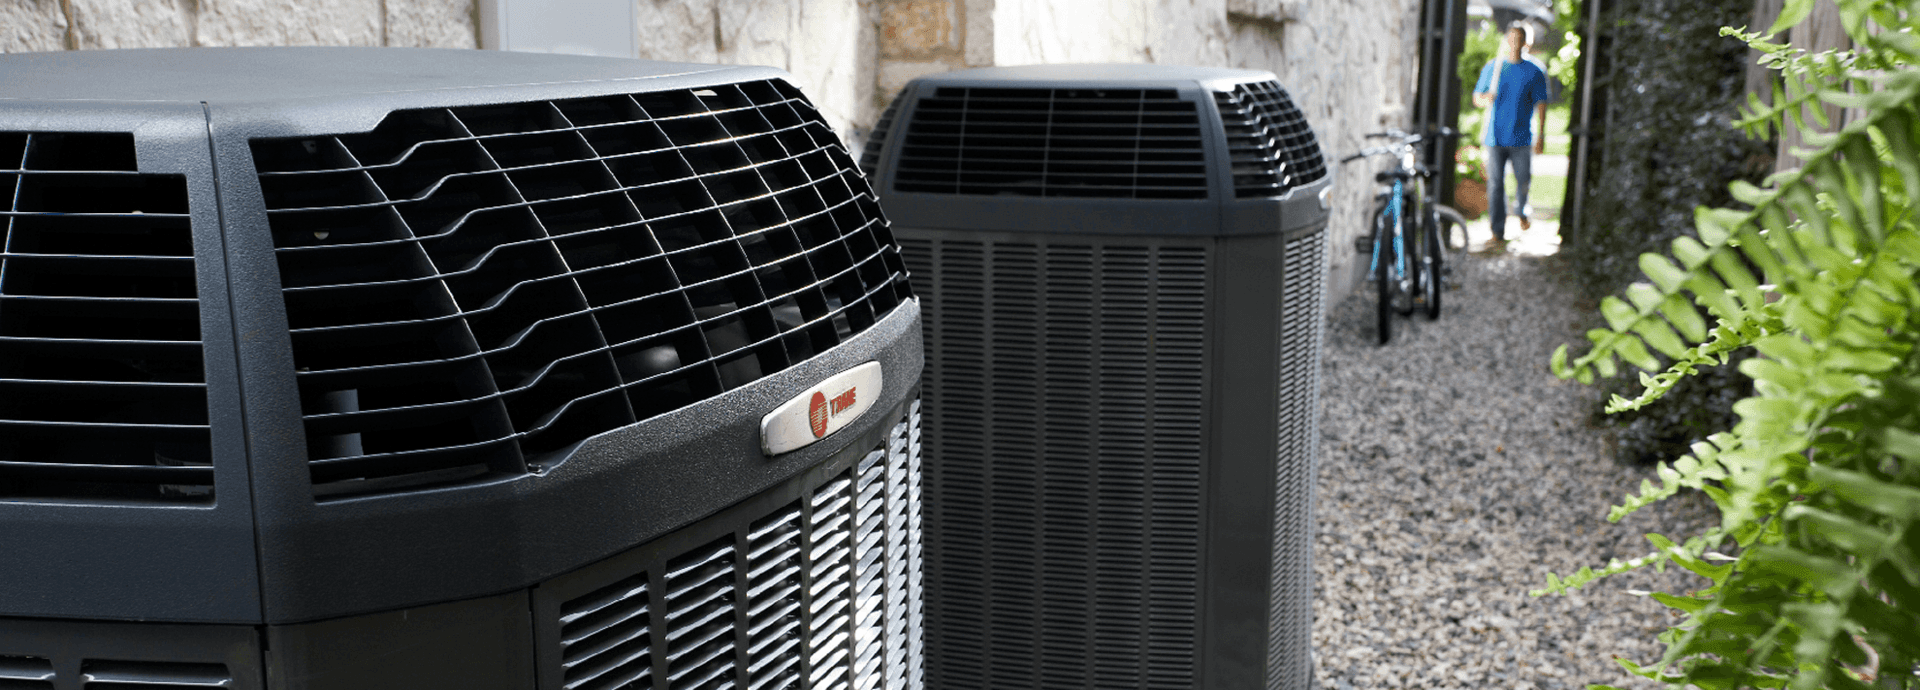 AA Heating N Air Conditioning image 1